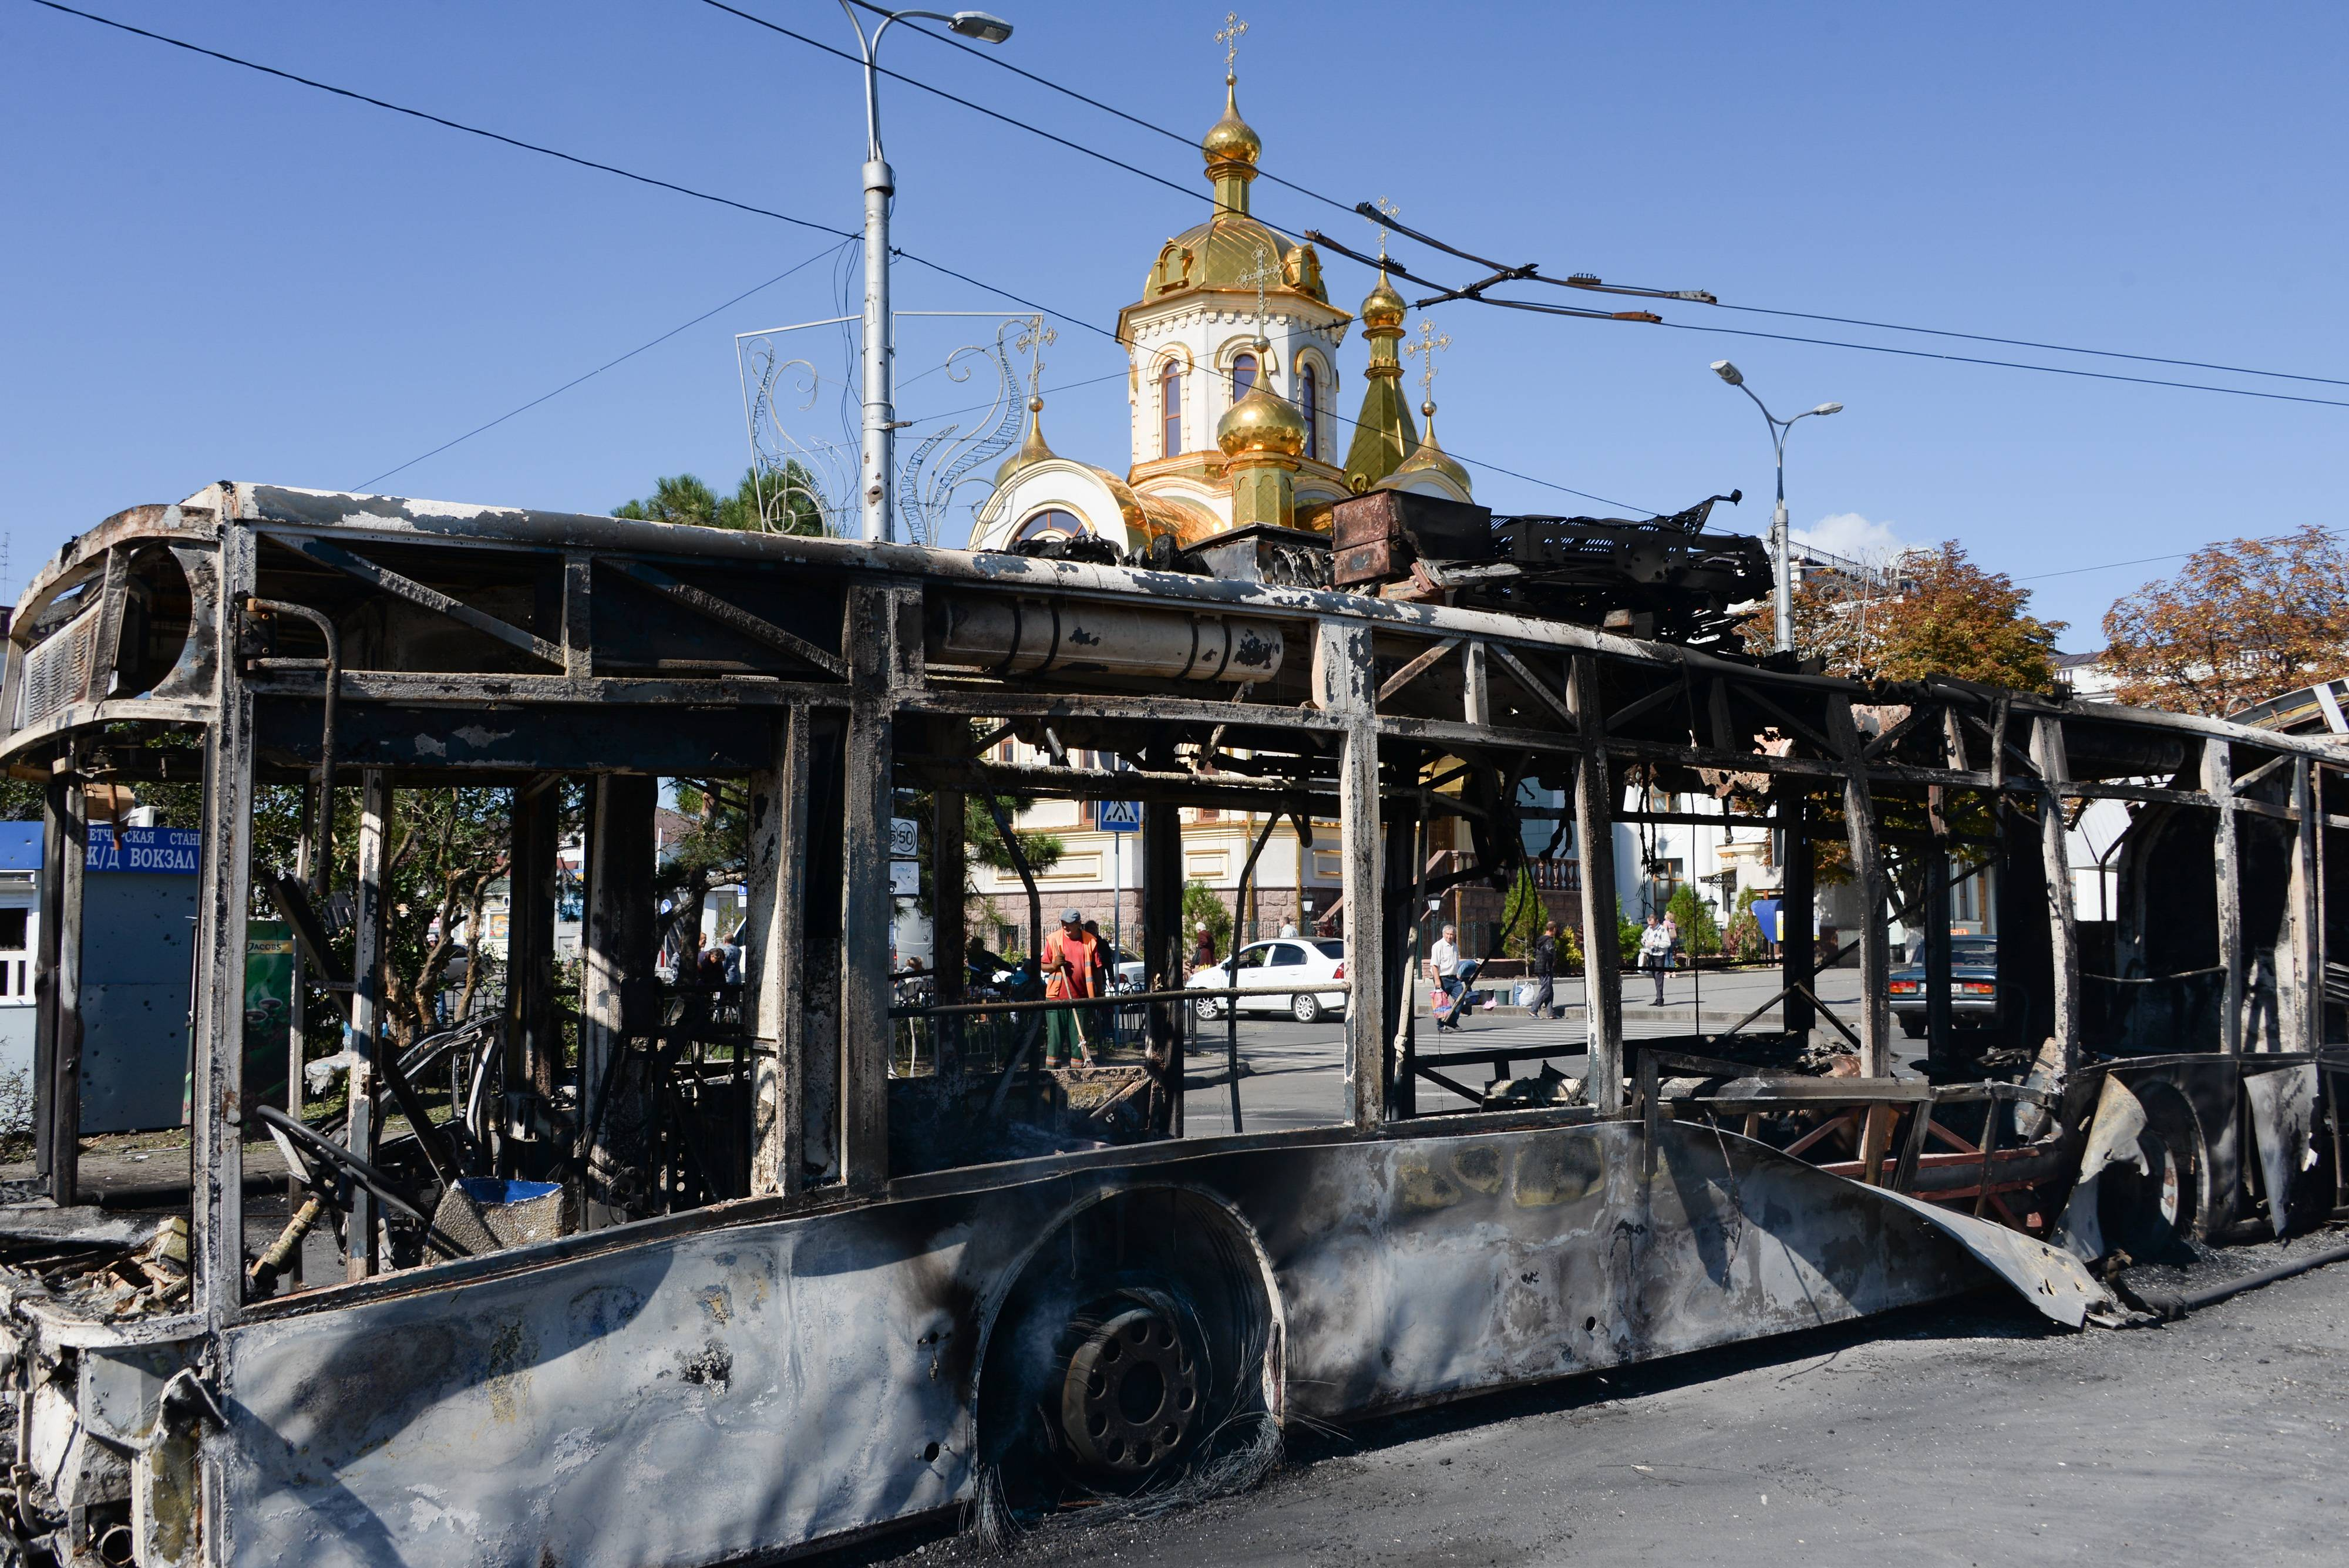 A burned trolley bus is seen near Donetsk train station after shelling, Donetsk, Ukraine, Saturday, Aug. 30. Heavy shelling from an unknown source hit a railway station and a nearby market on Friday evening in Donetsk, the largest rebel-held city in eastern Ukraine, an OSCE observer said at the site.